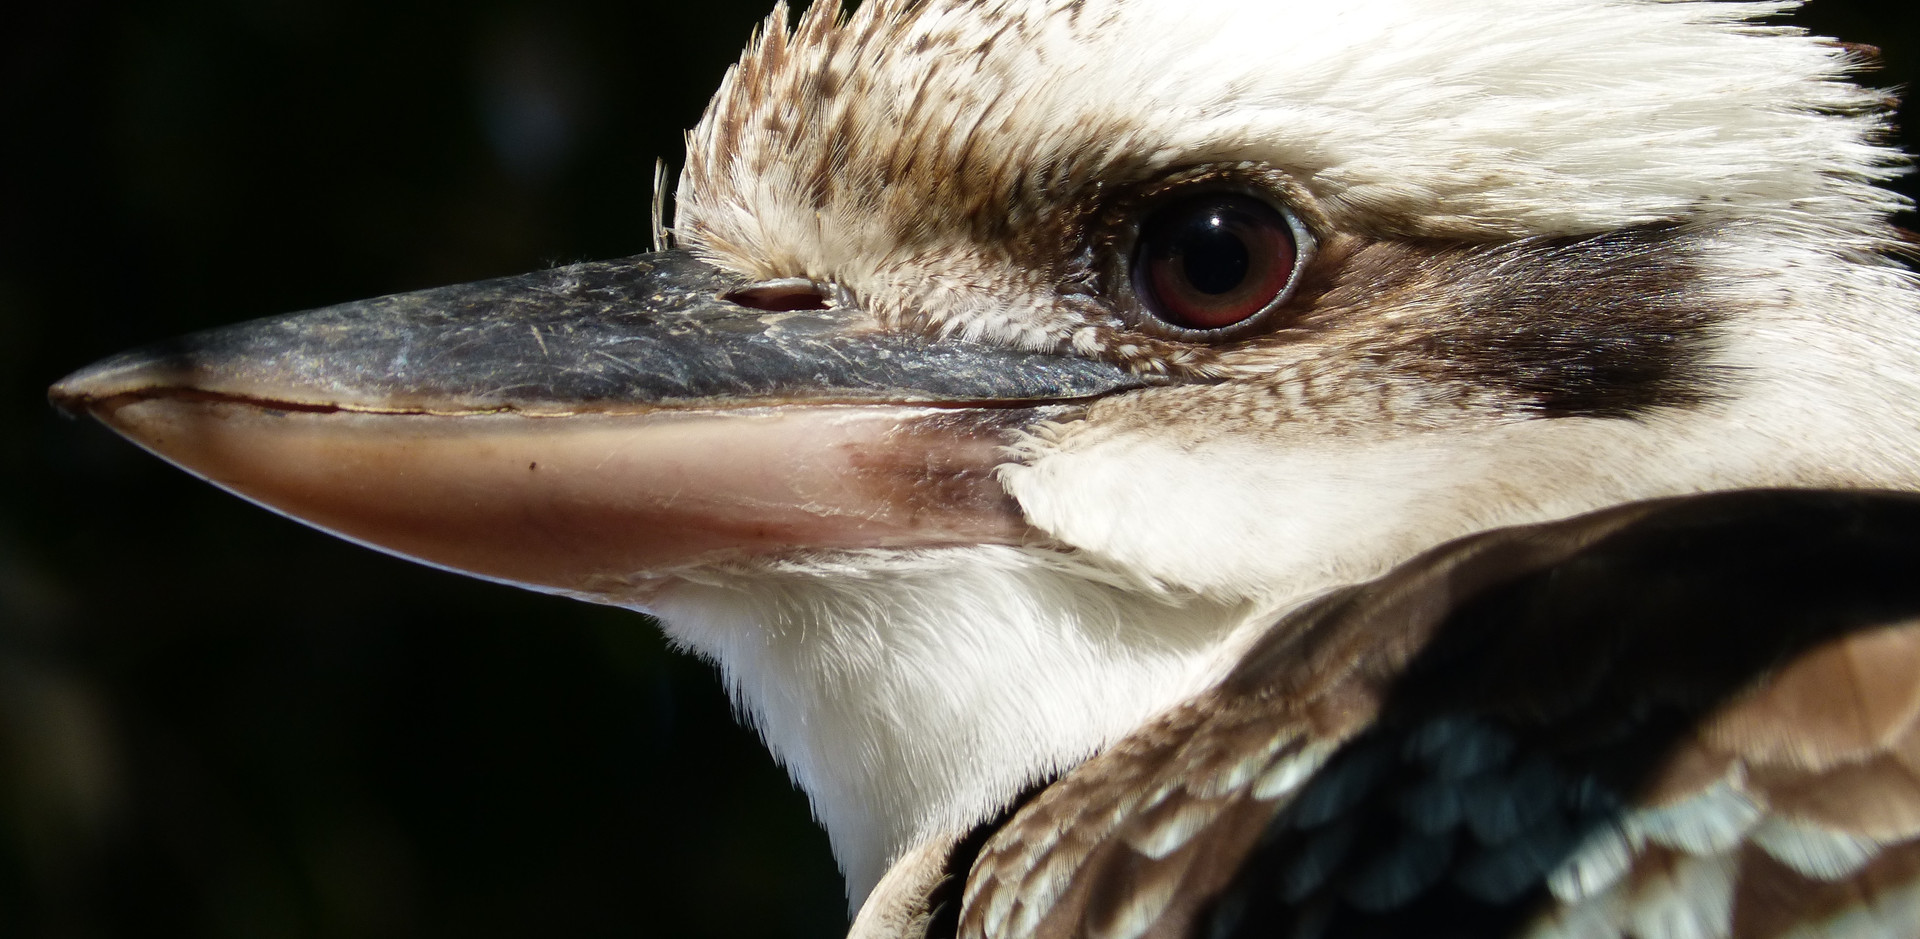 Adult Laughing Kookaburra